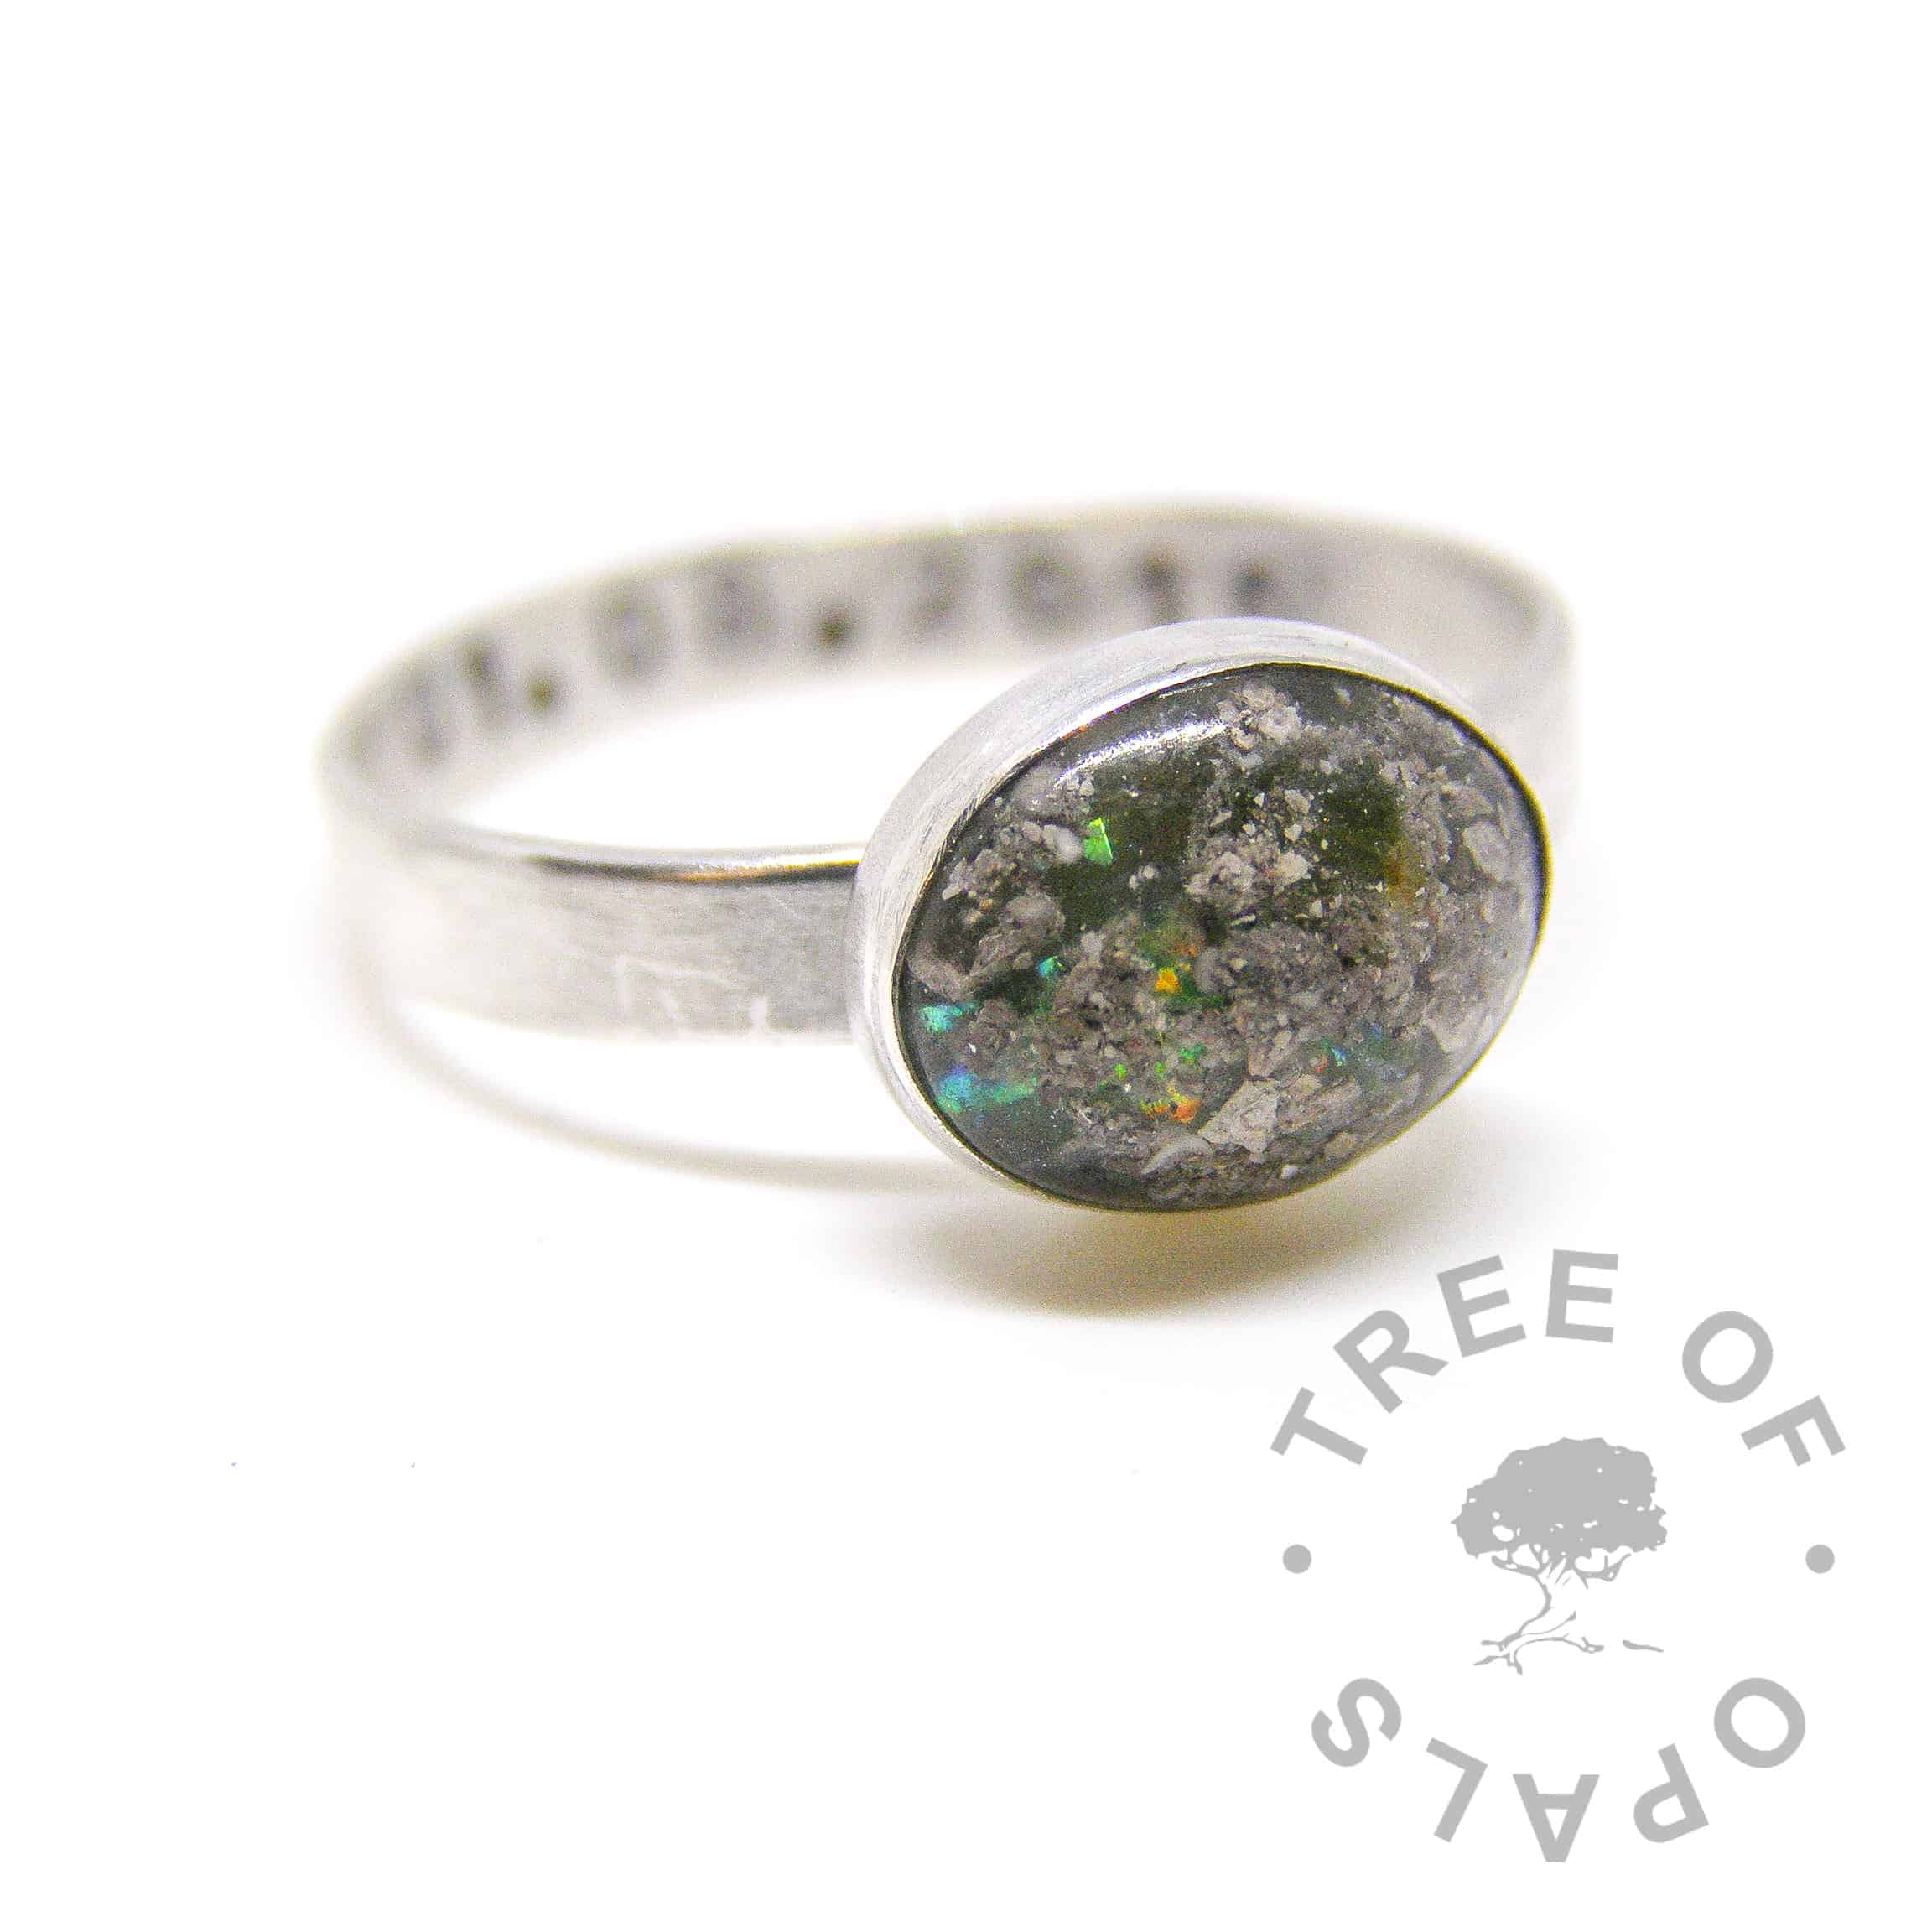 peridot cremation ash ring with peridot August birthstone and cobalt blue glitter. Pro Bono free of charge baby loss ring with brushed band and date of birth stamping